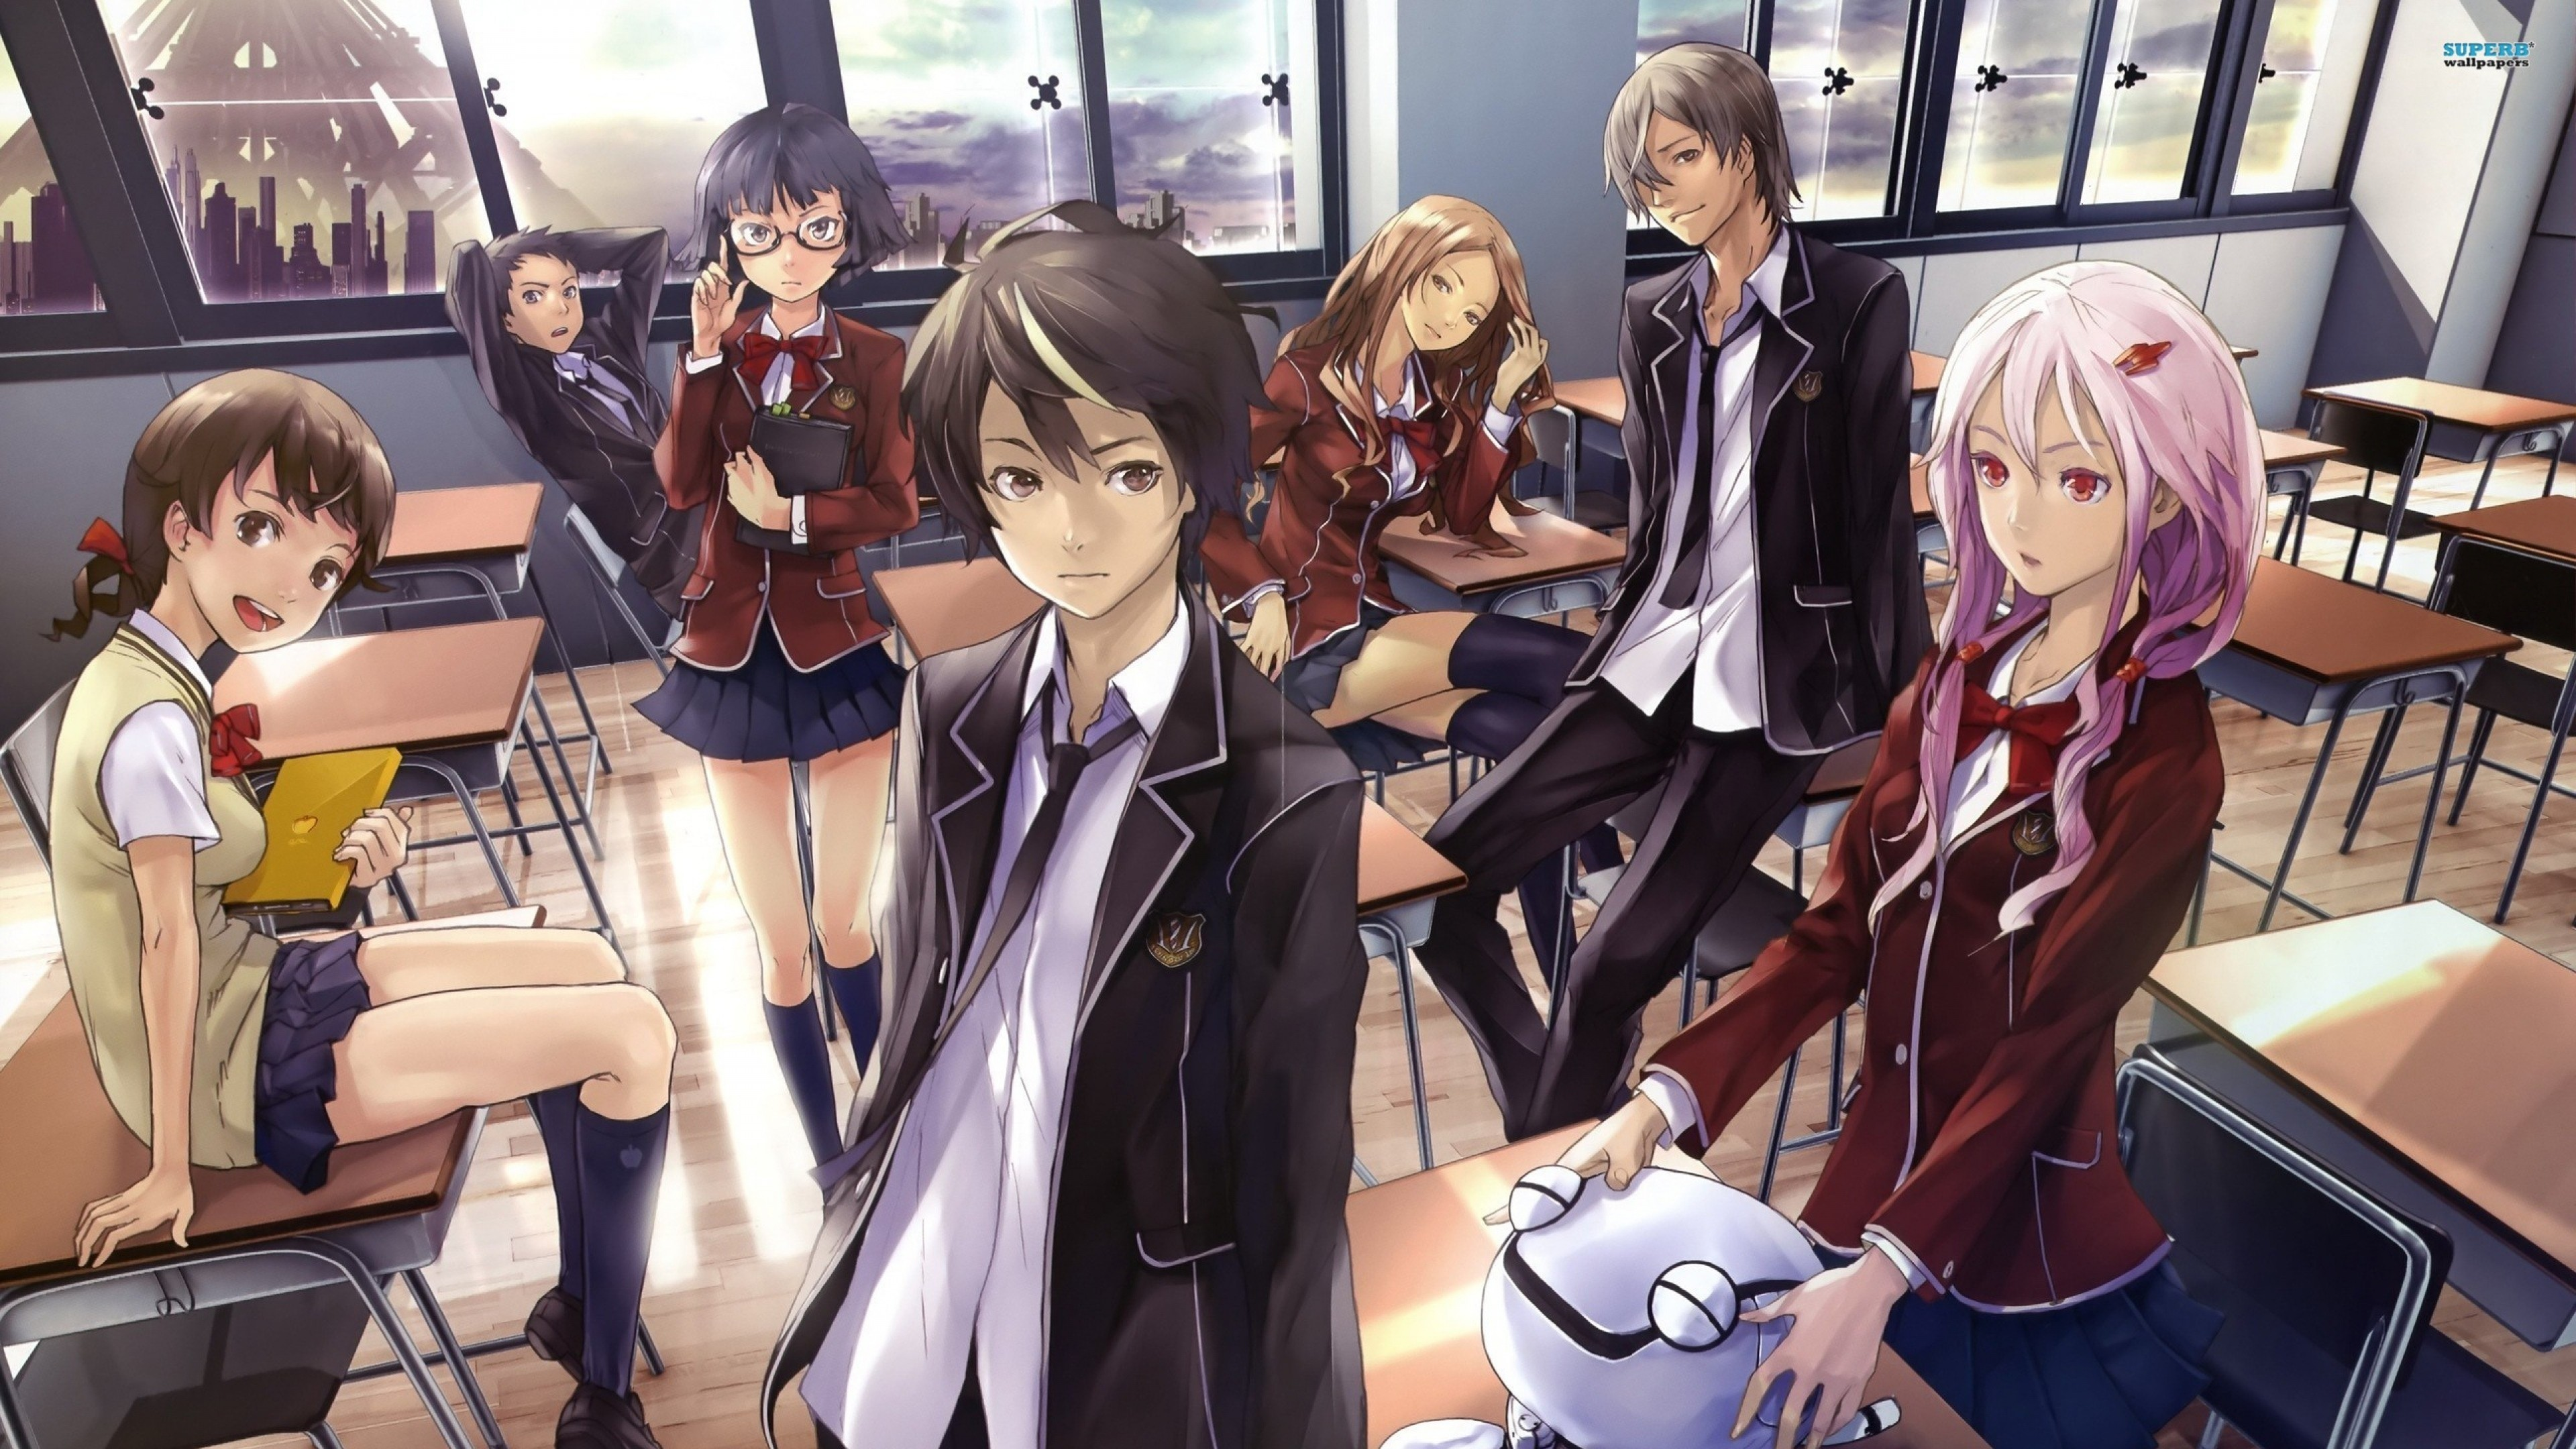 Wallpaper anime, guilty crown, students, class, rest